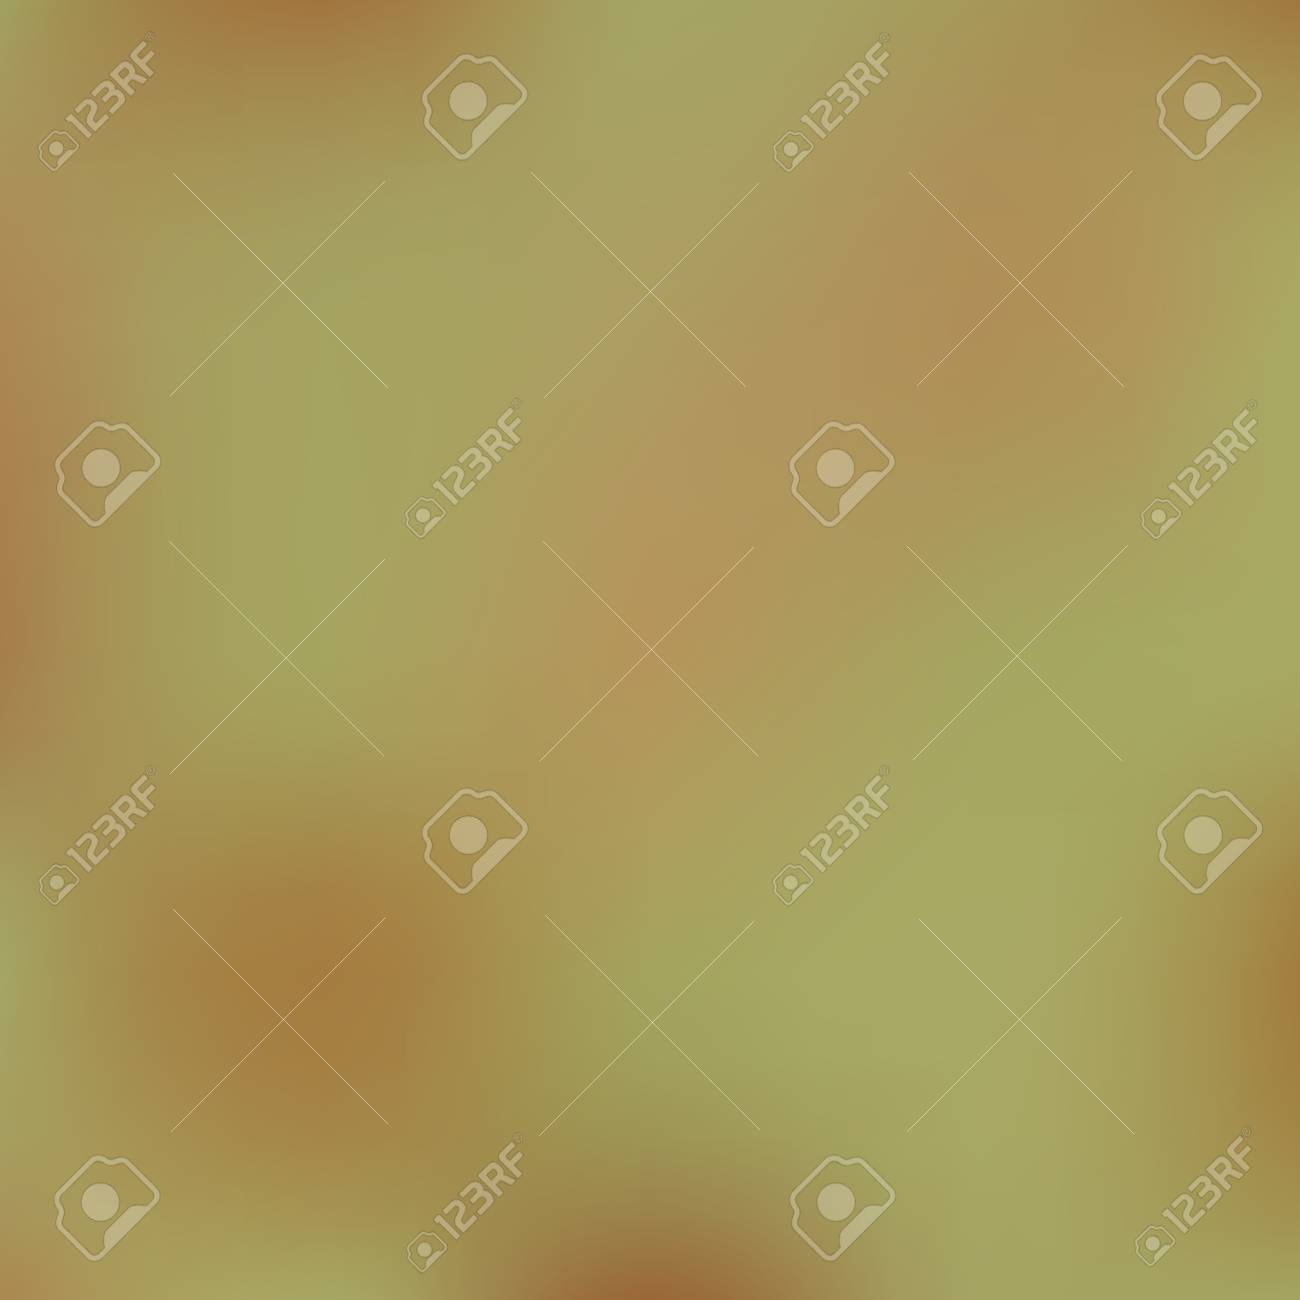 Brand-new colored abstract mesh gradient background. Trend in the most fashionable colors for Taiwan. Modern concept. The best blurred design for your business. Vector. - 127024793